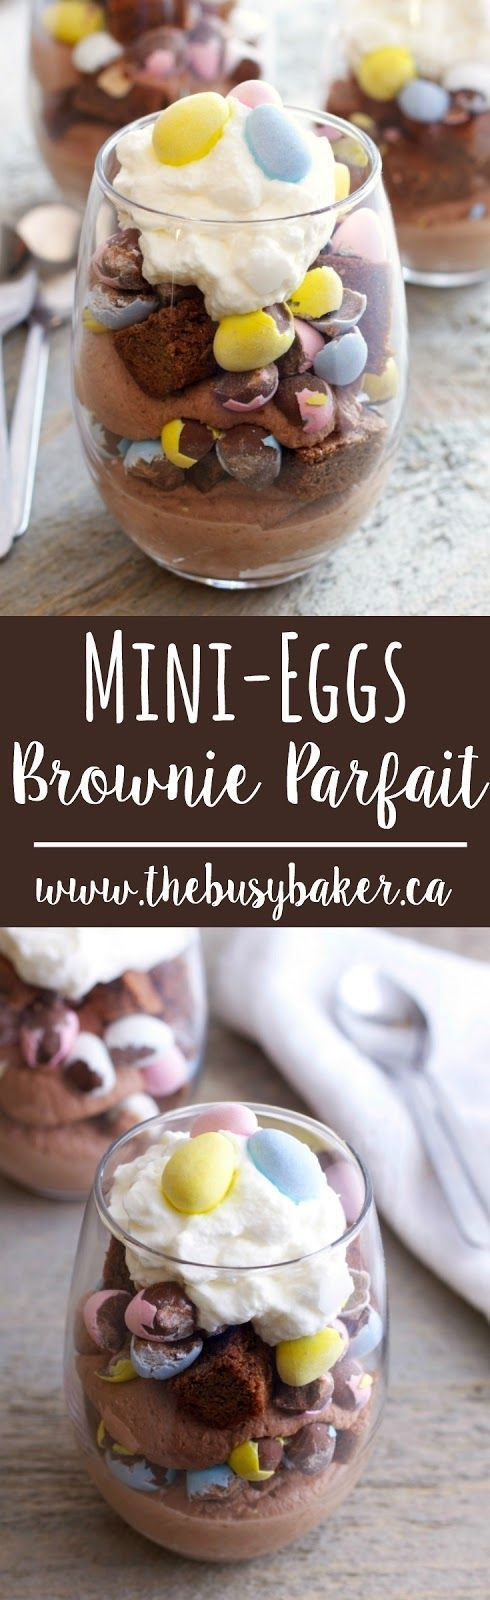 These Mini Eggs Brownie Parfaits from thebusybaker.ca are the perfect Easter dessert!